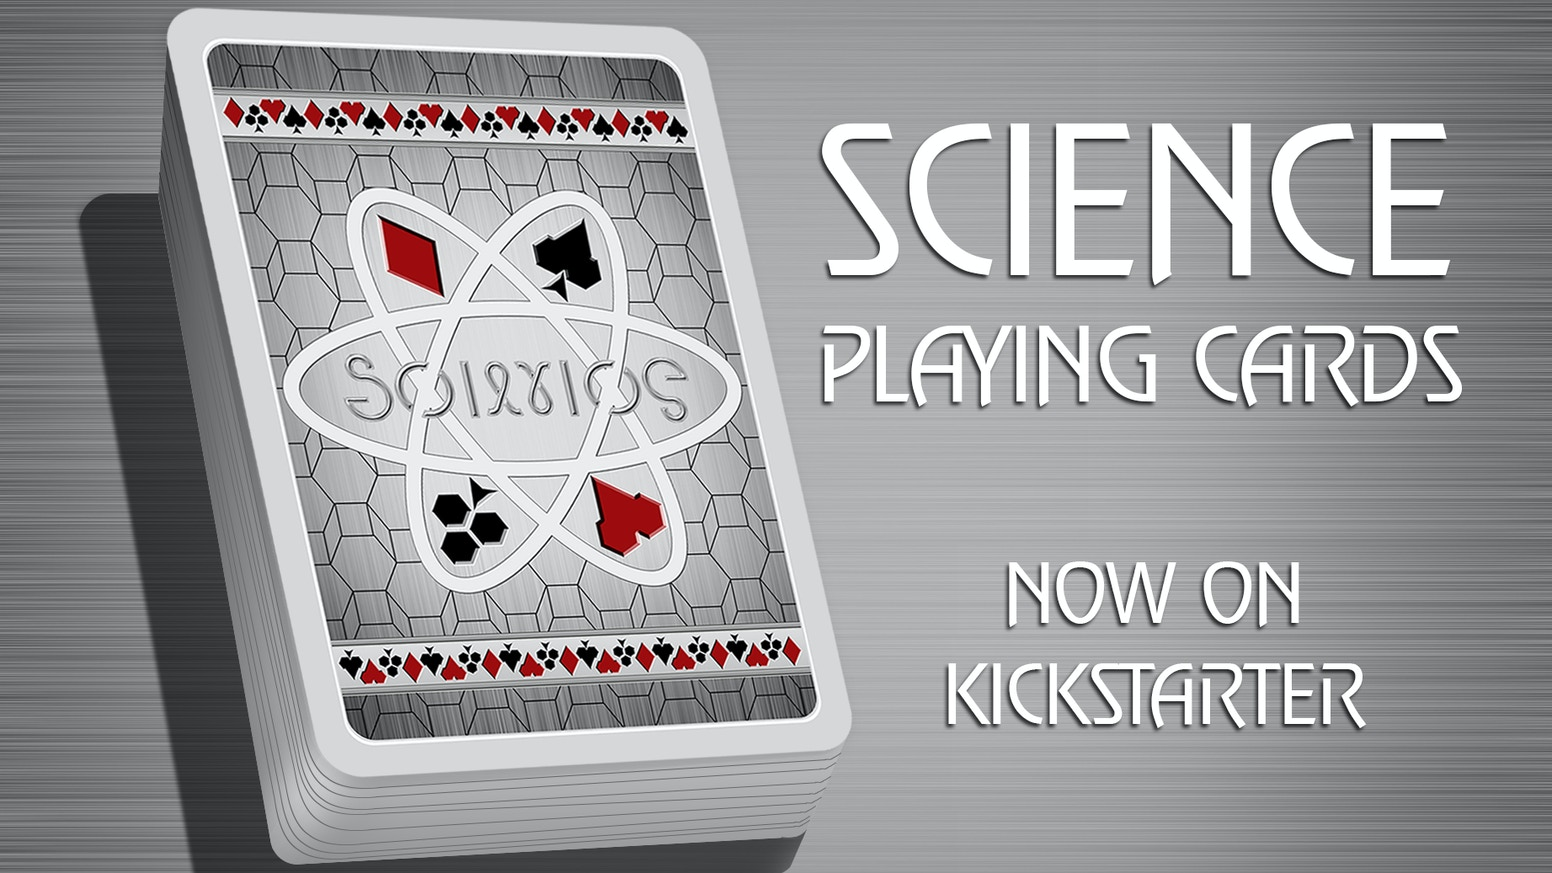 An epic deck like no other, The Science Deck will unleash your inner nerd with 56 fully customized original playing cards.